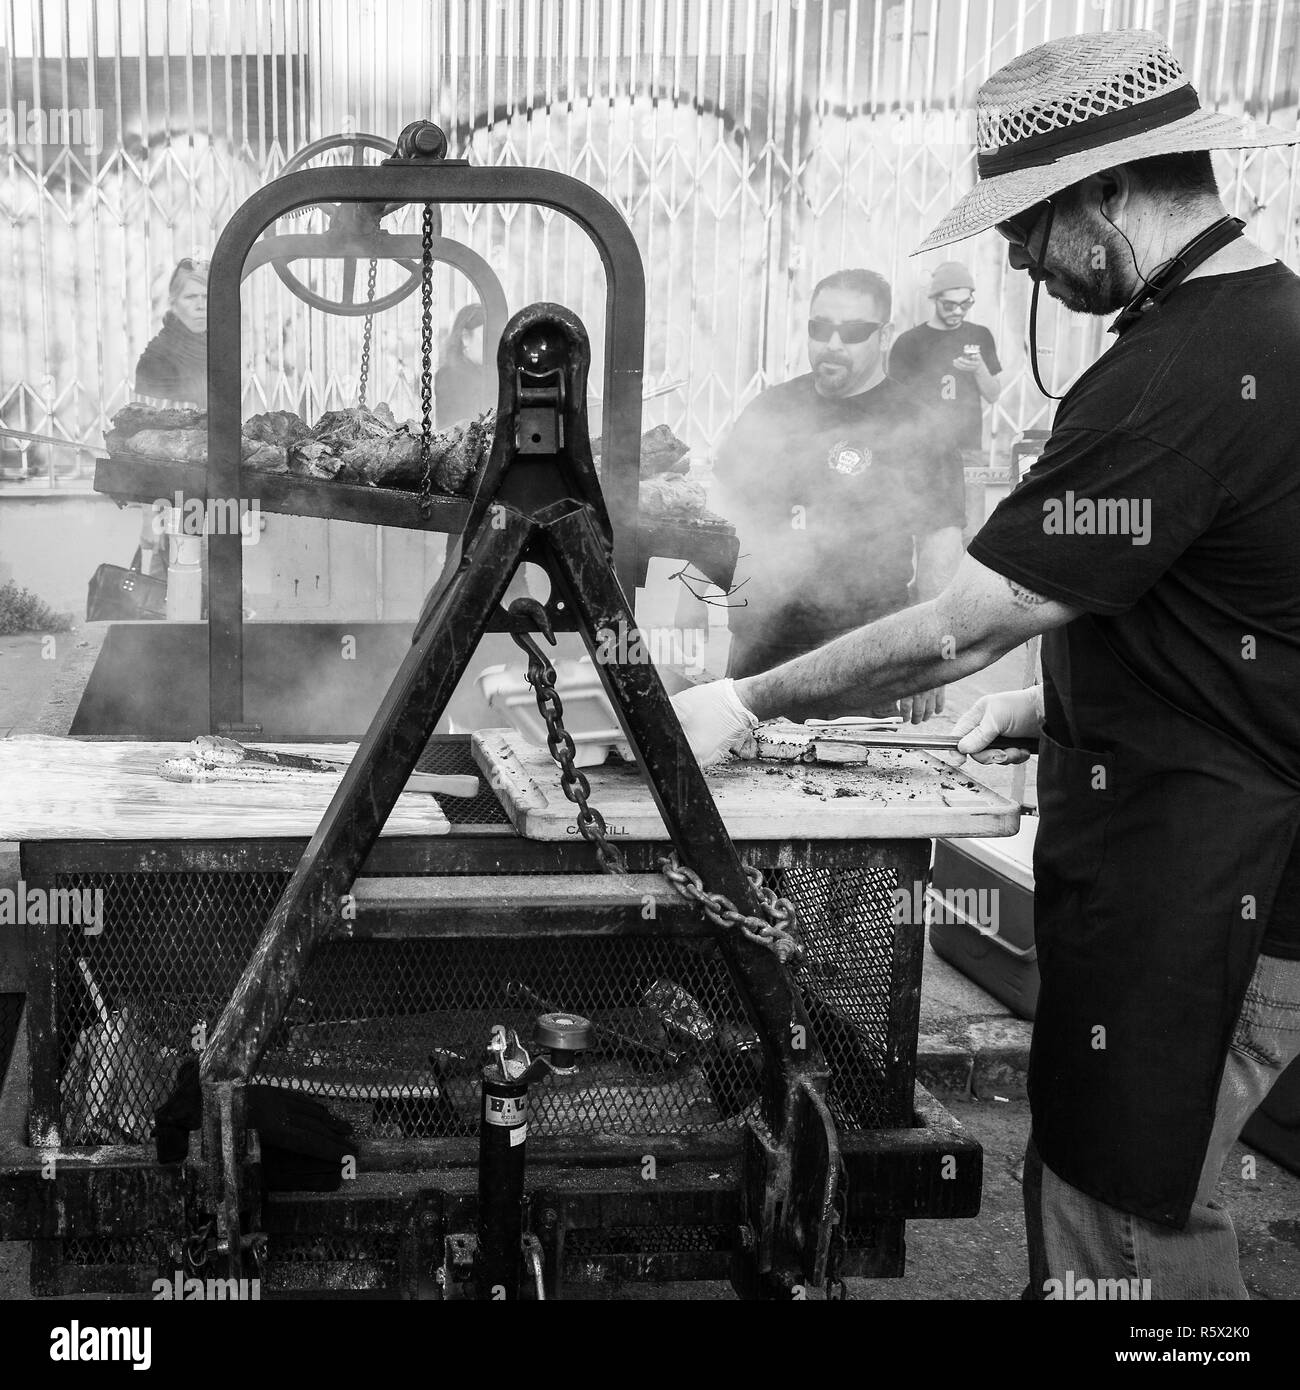 OAKLAND, CA-June 6, 2014: Street chef at Art Murmur cooks bbq on an industrial strength grill. Gritty urban setting. Black and white square format. - Stock Image